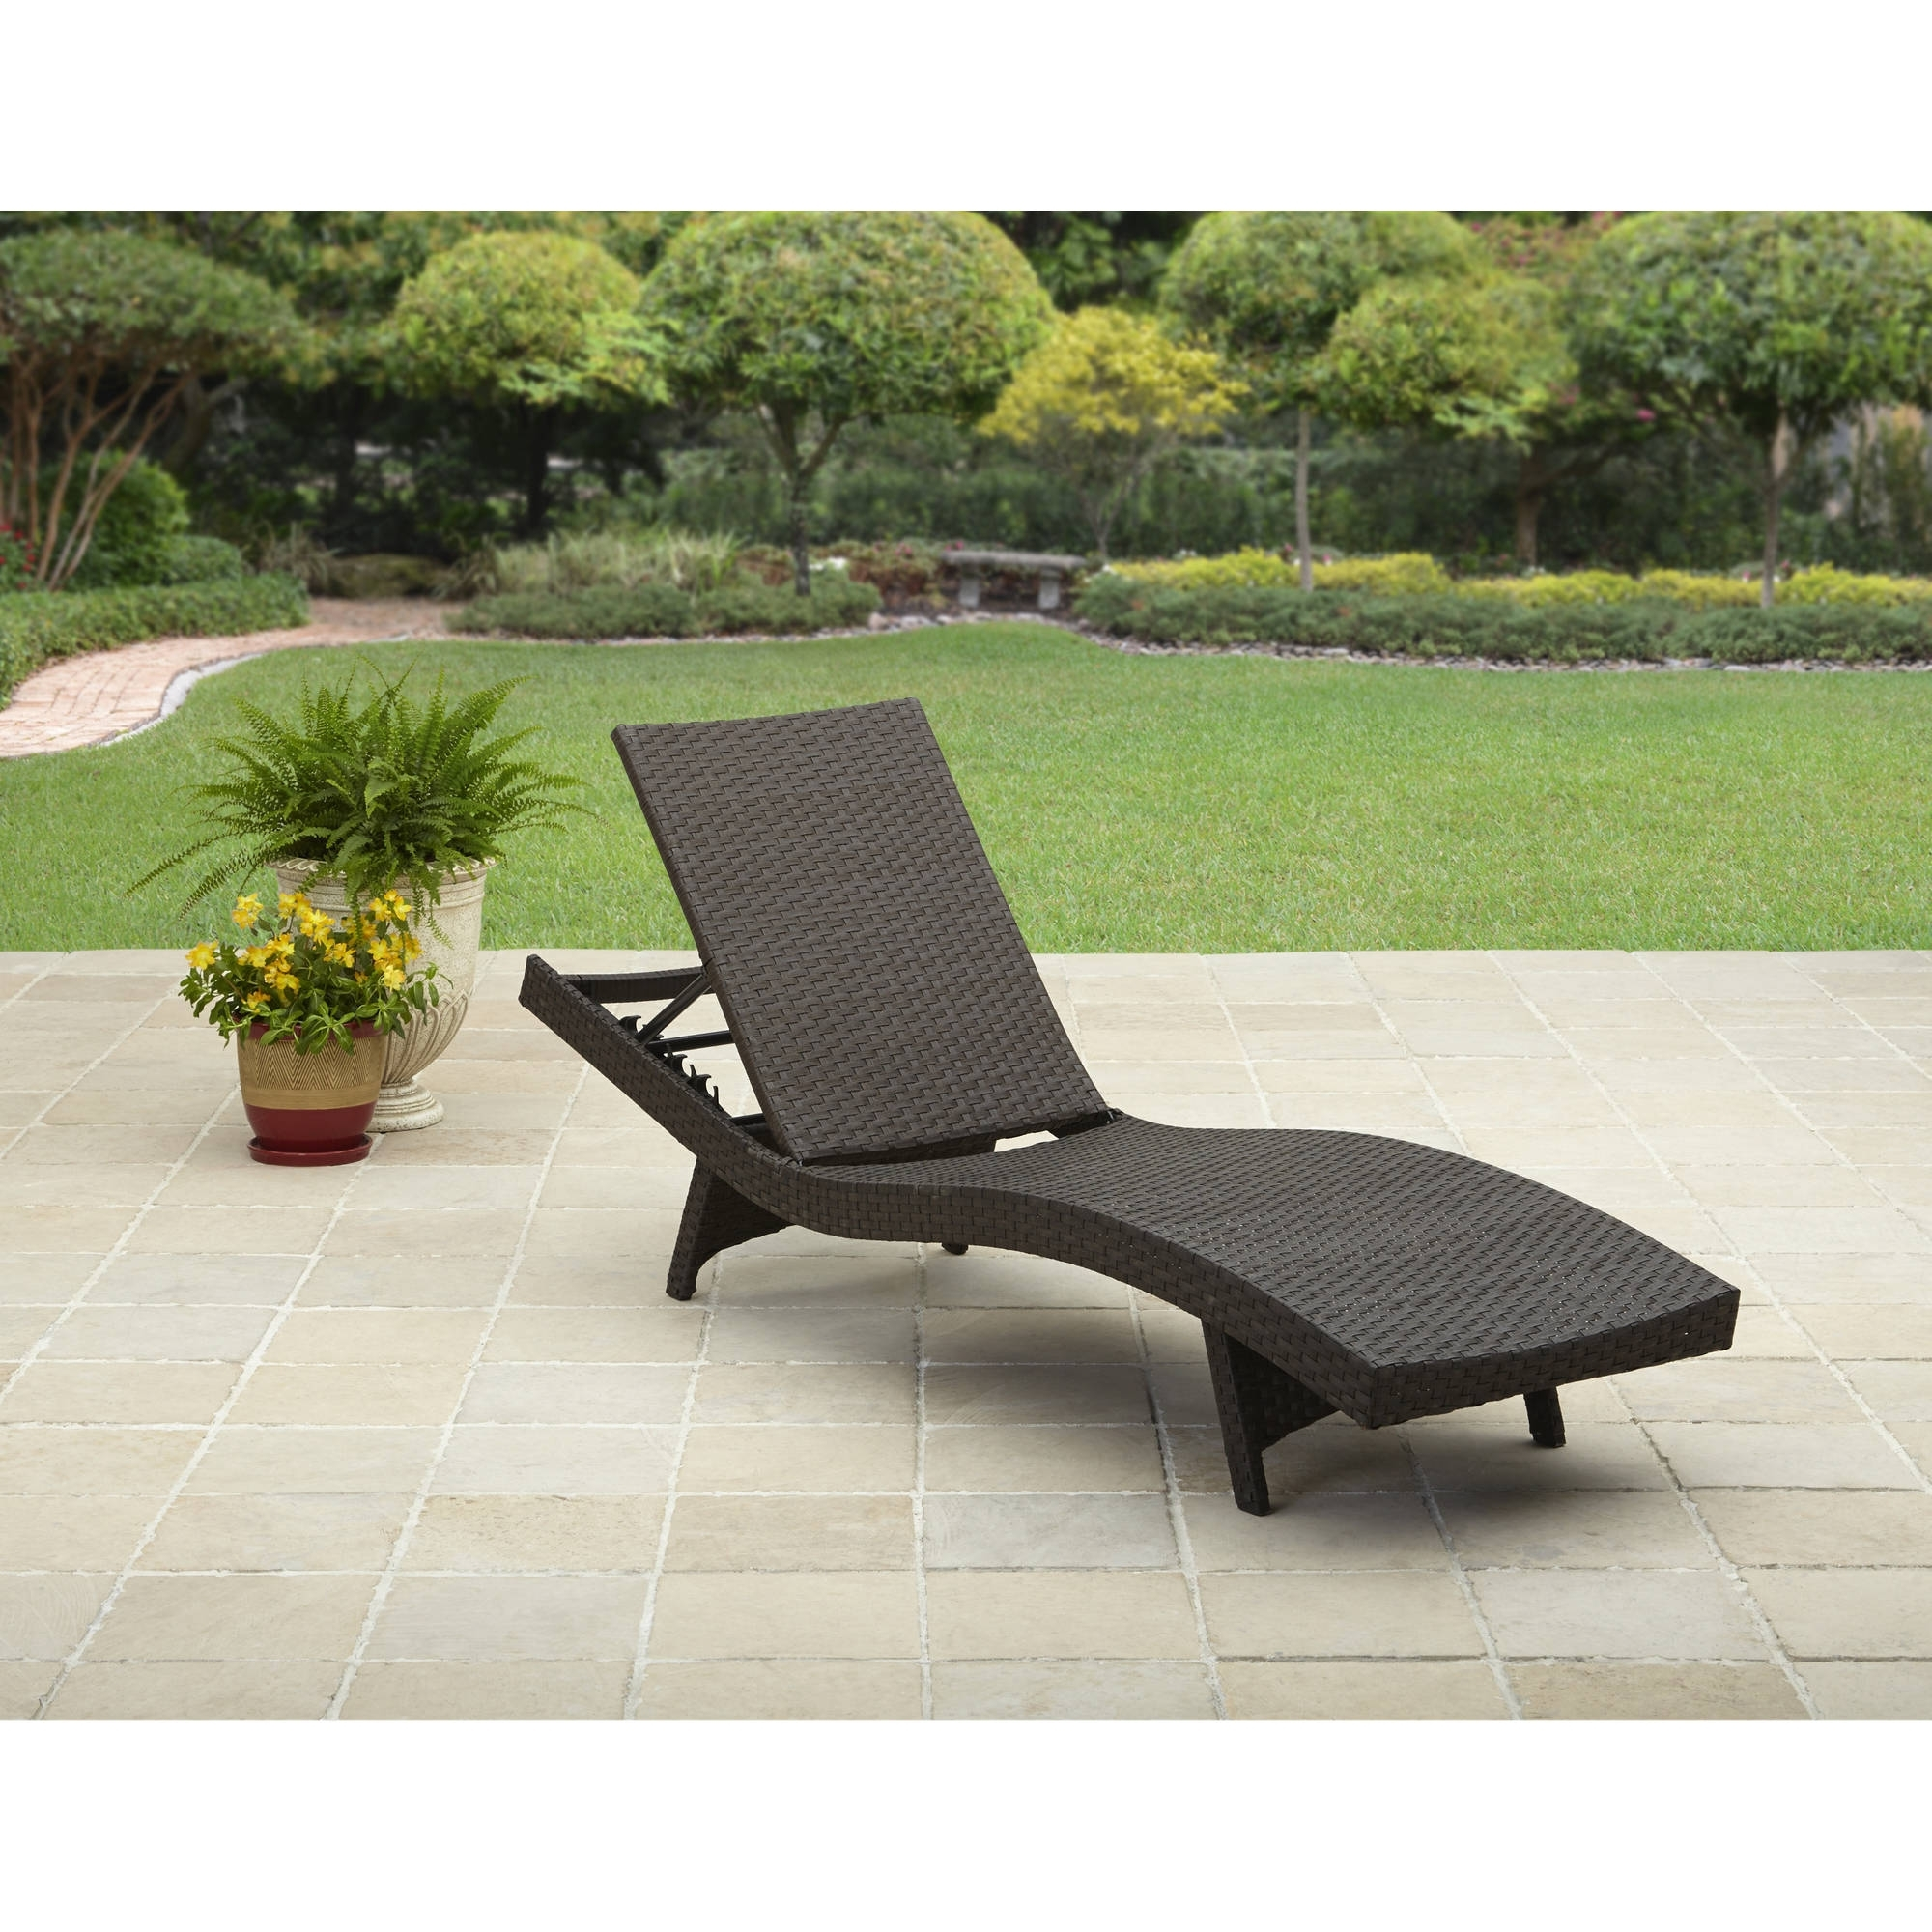 Better Homes And Gardens Avila Beach Chaise – Walmart Within Well Liked Walmart Outdoor Chaise Lounges (View 1 of 15)